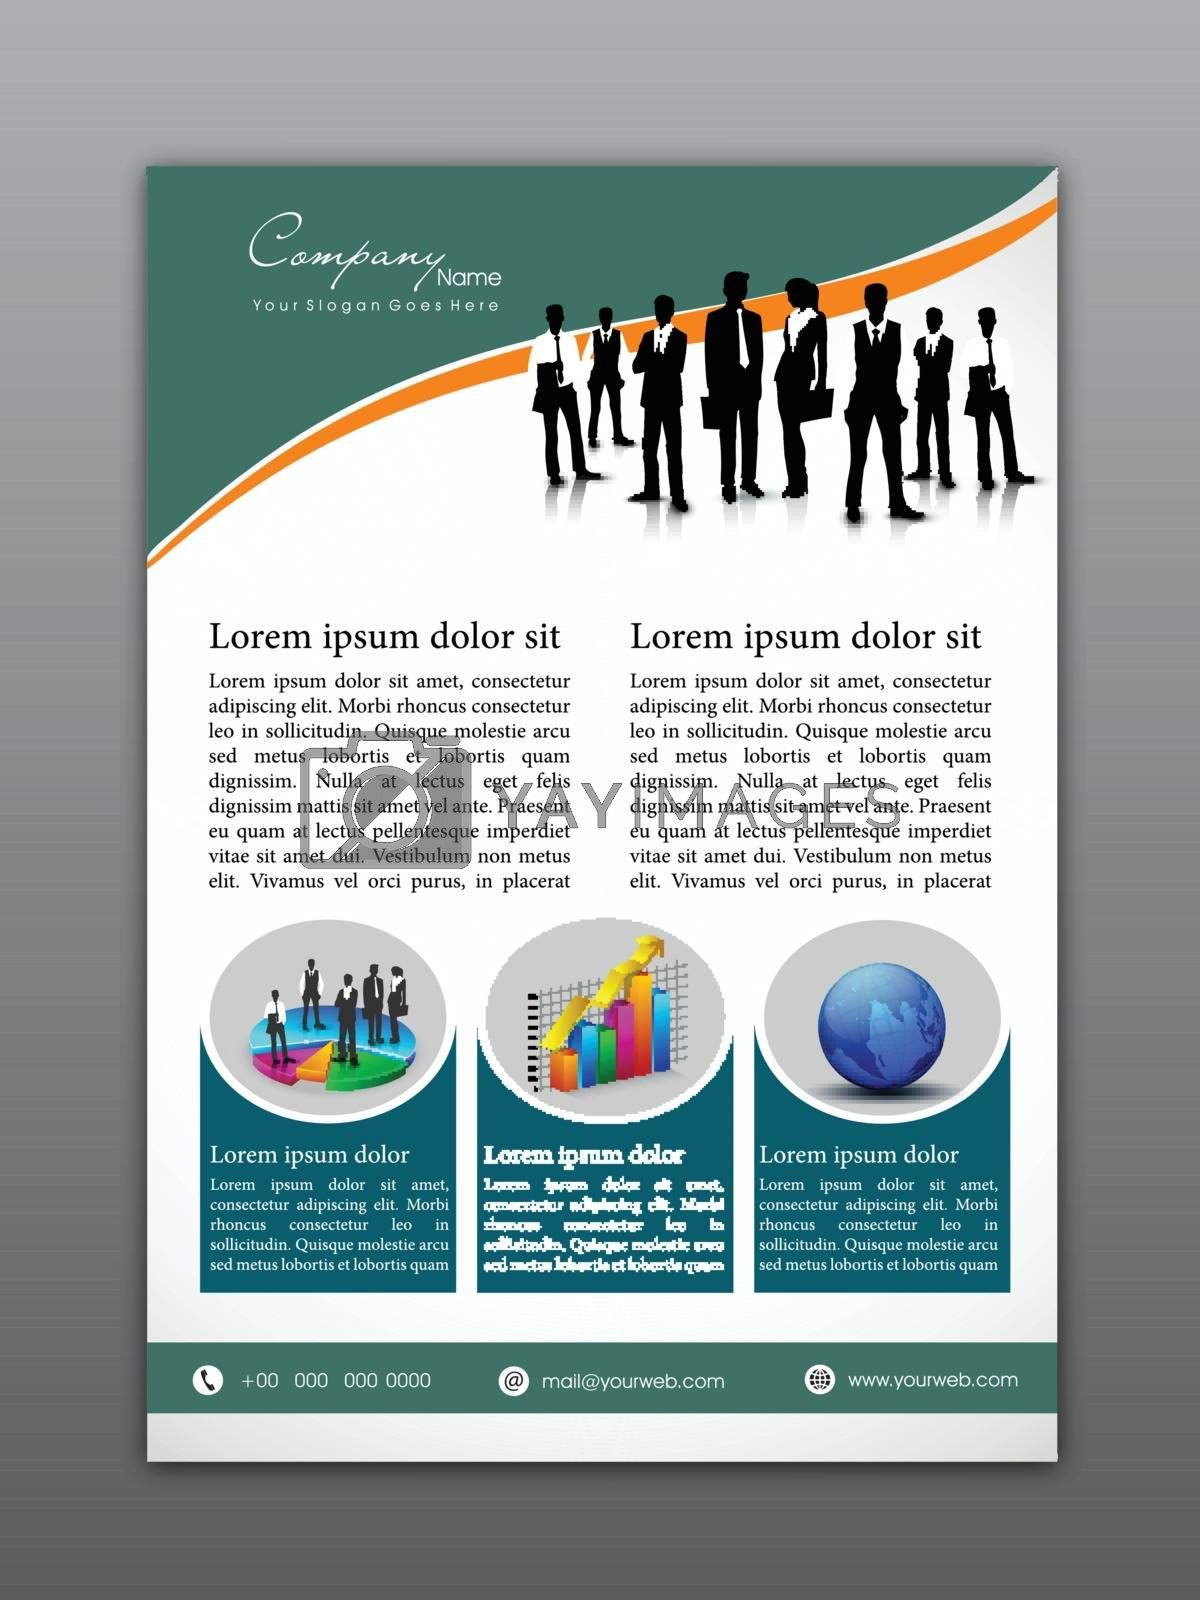 Professional Flyer, Template or Corporate Banner design with illustration of business people and infographic elements.